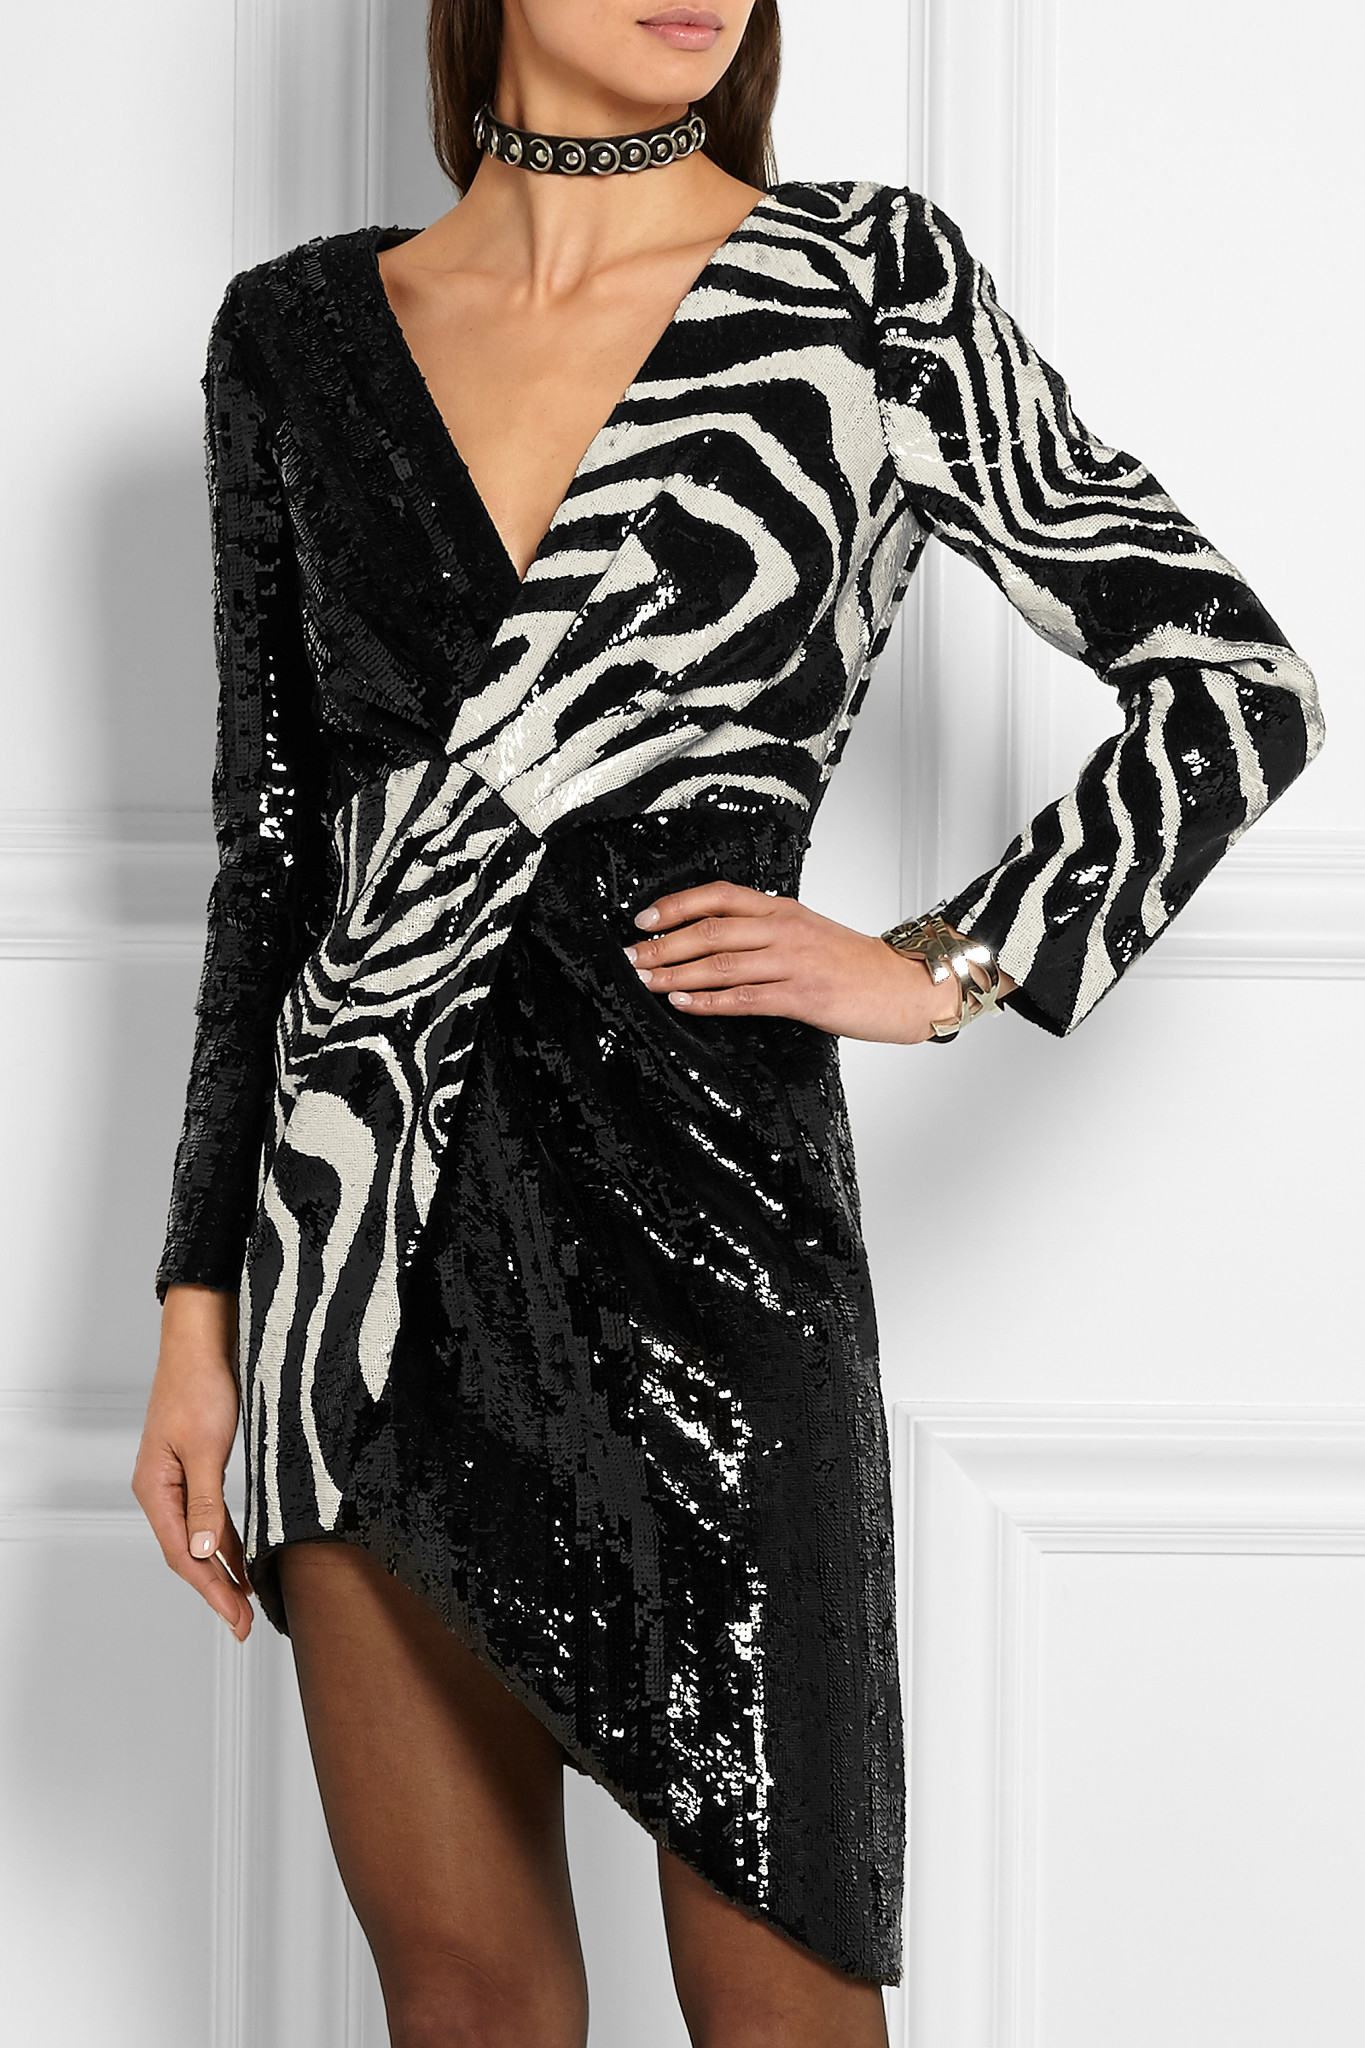 Saint Laurent Asymmetric Zebra Print Sequined Wool Mini